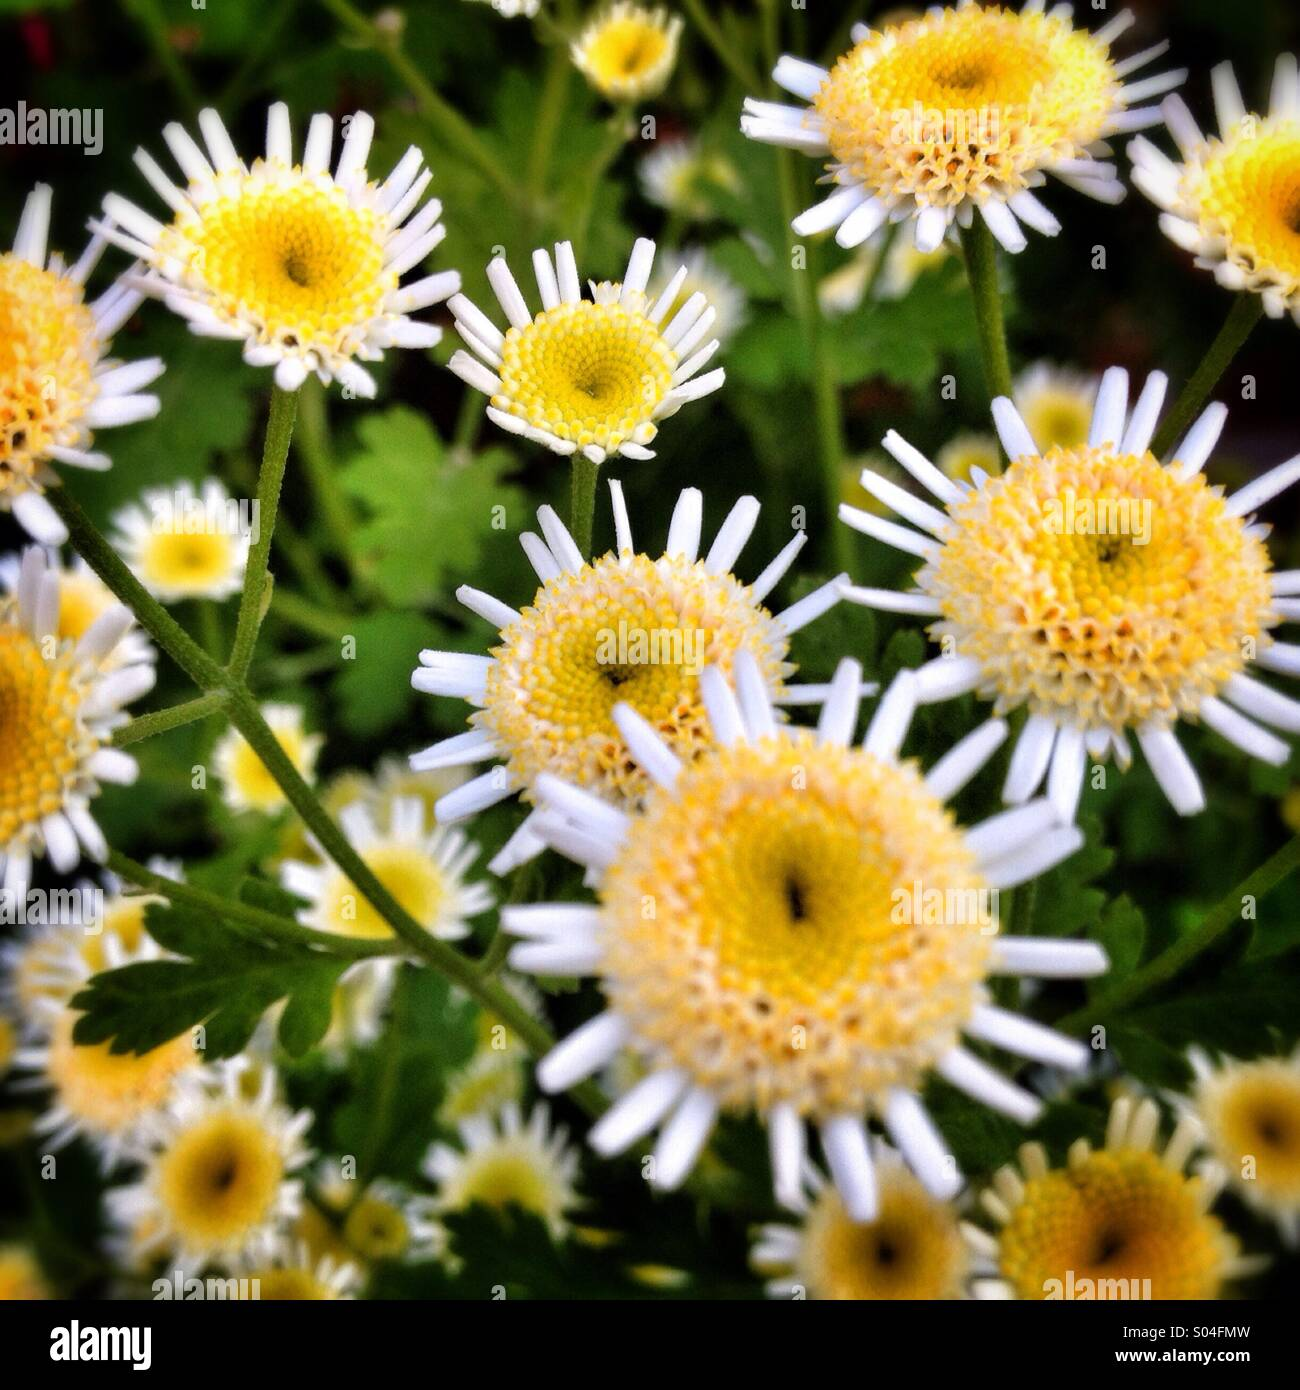 White and yellow flowers - Stock Image